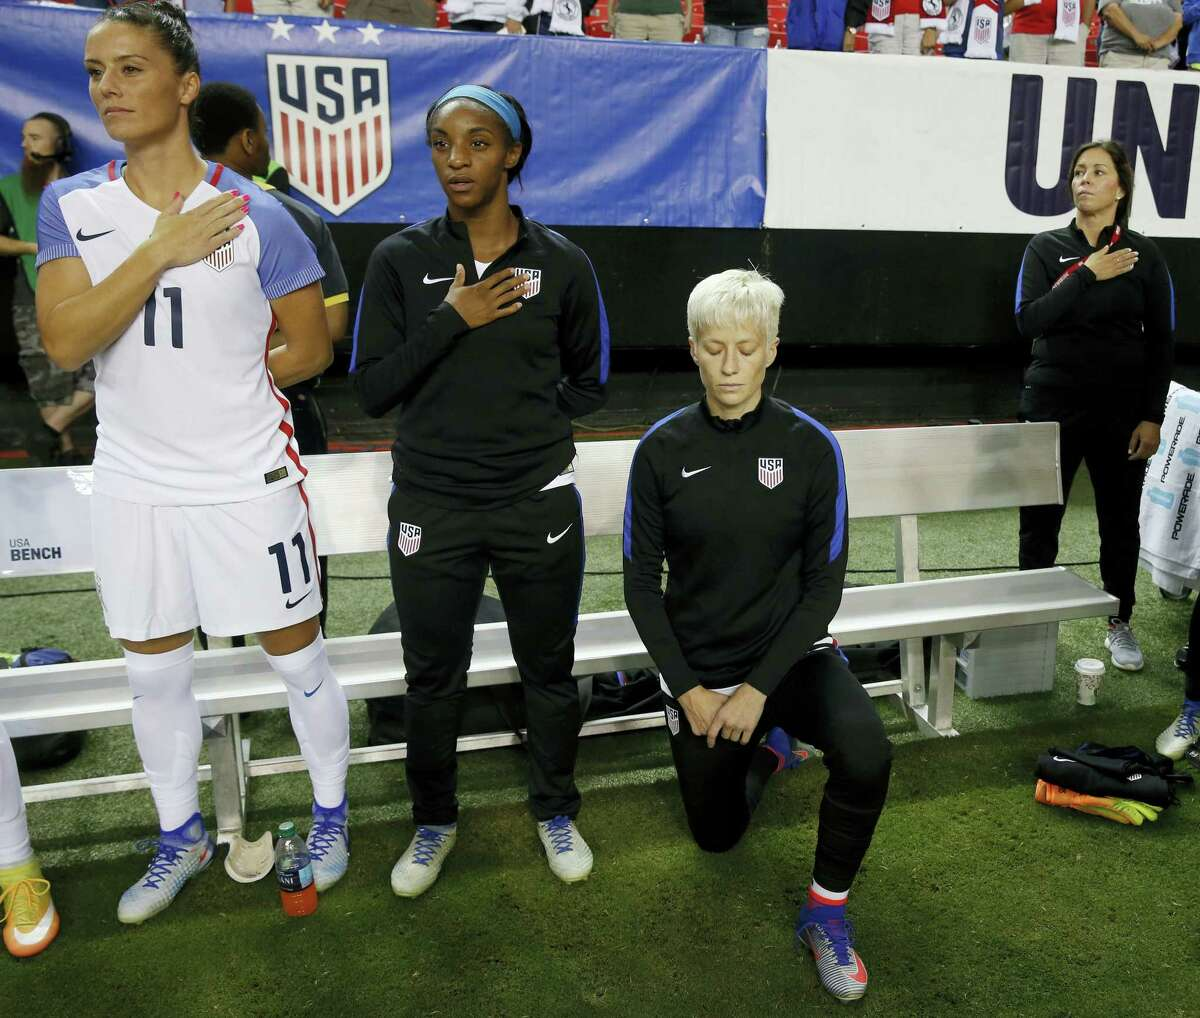 """the United States' Megan Rapinoe, right, kneels next to teammates Ali Krieger (11) and Crystal Dunn (16) as the U.S. national anthem is played before an exhibition match. Rapinoe says she will respect a new U.S. Soccer Federation policy that says national team players """"shall stand respectfully"""" during national anthems."""